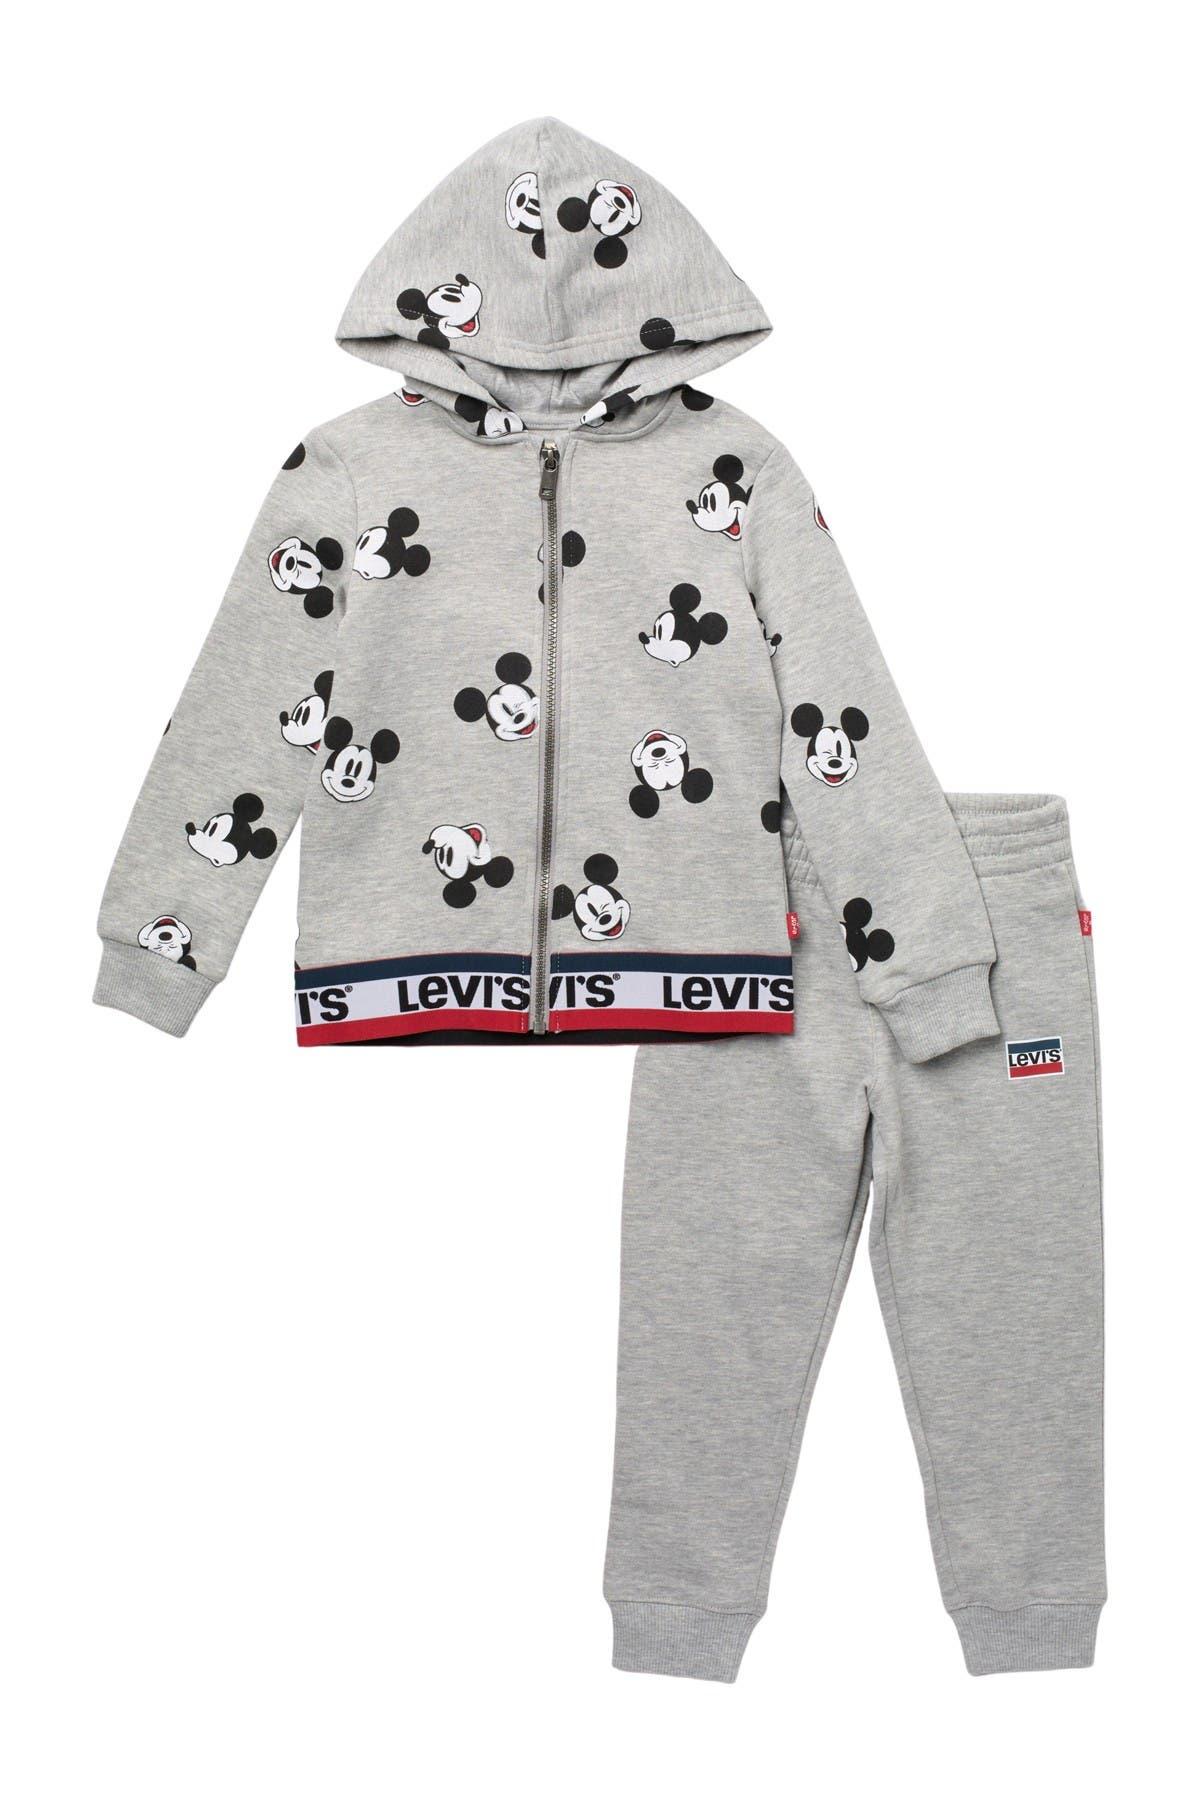 Image of Levi's Mickey Mouse Hoodie & Pants Set